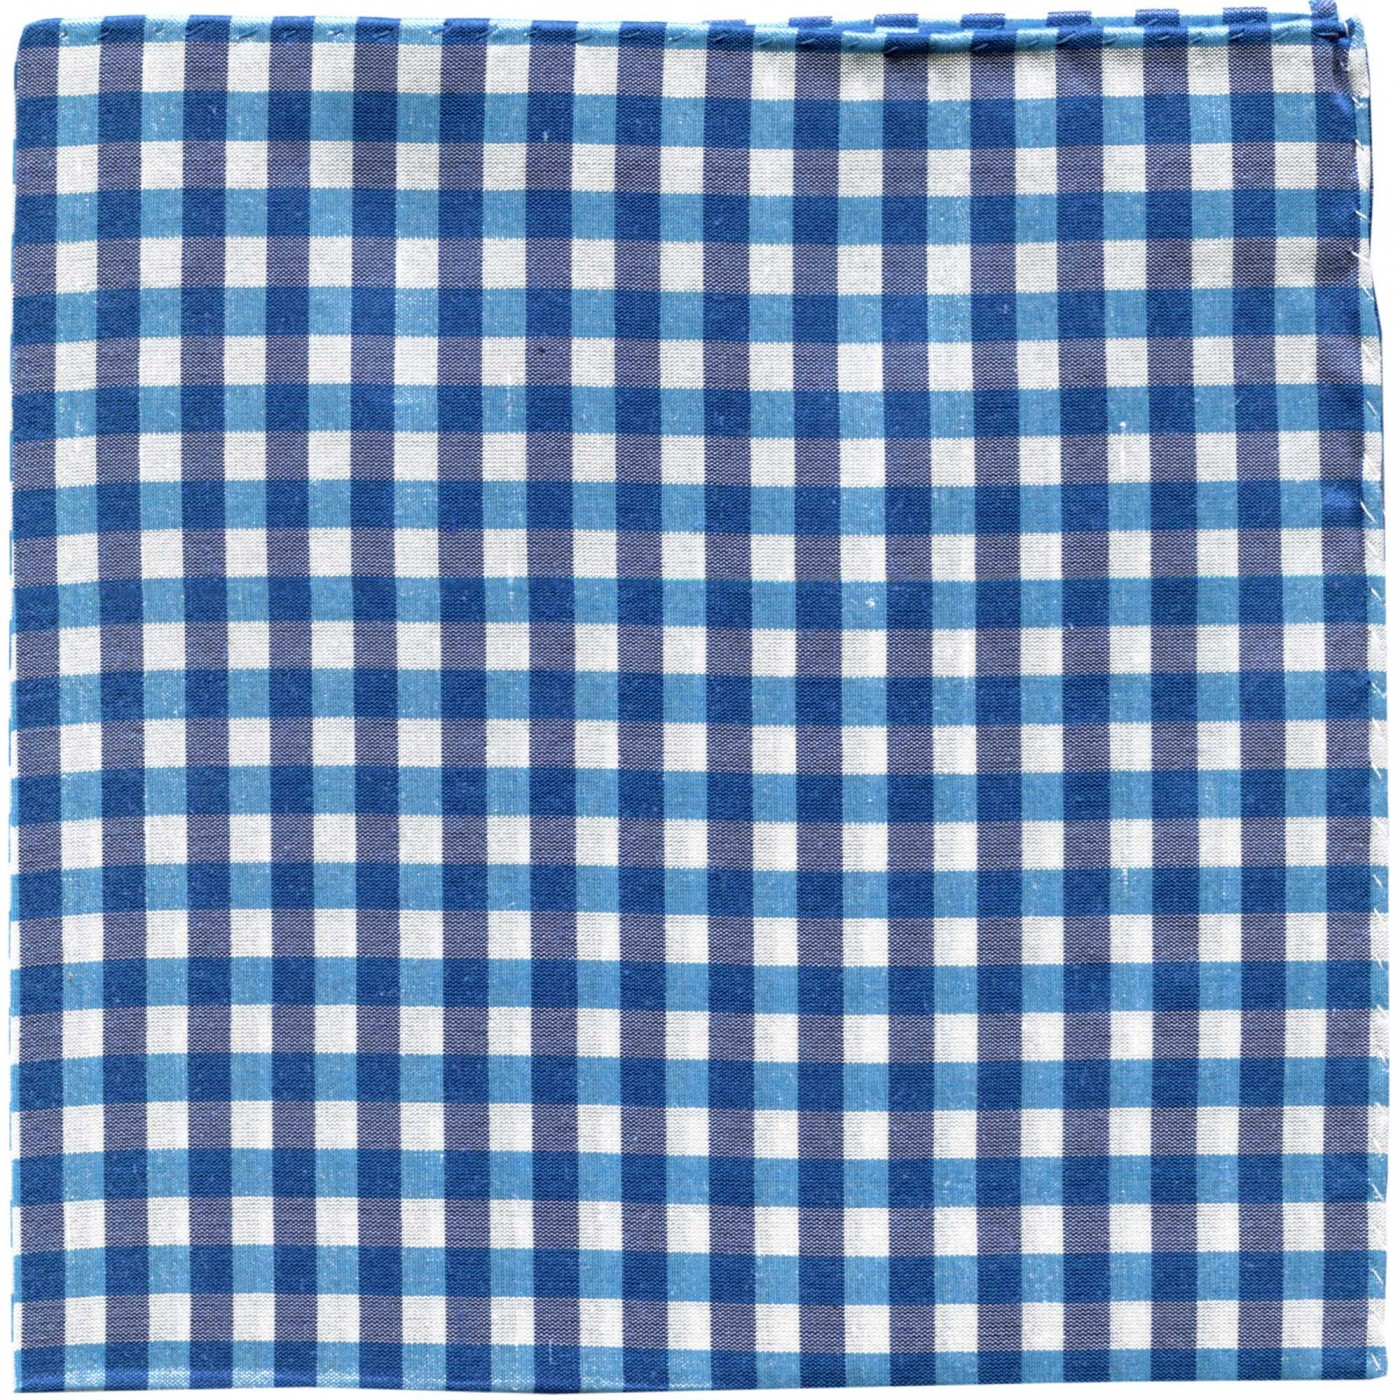 Blue Gingham Picnic / Party Plastic Tablecloth Roll, Disposable Picnic colored Table cloth On a Roll With Self Cutter Box,Cut Tablecloth To Your Own Table Size,Indoor/Outdoor, By Clearly Elegant.